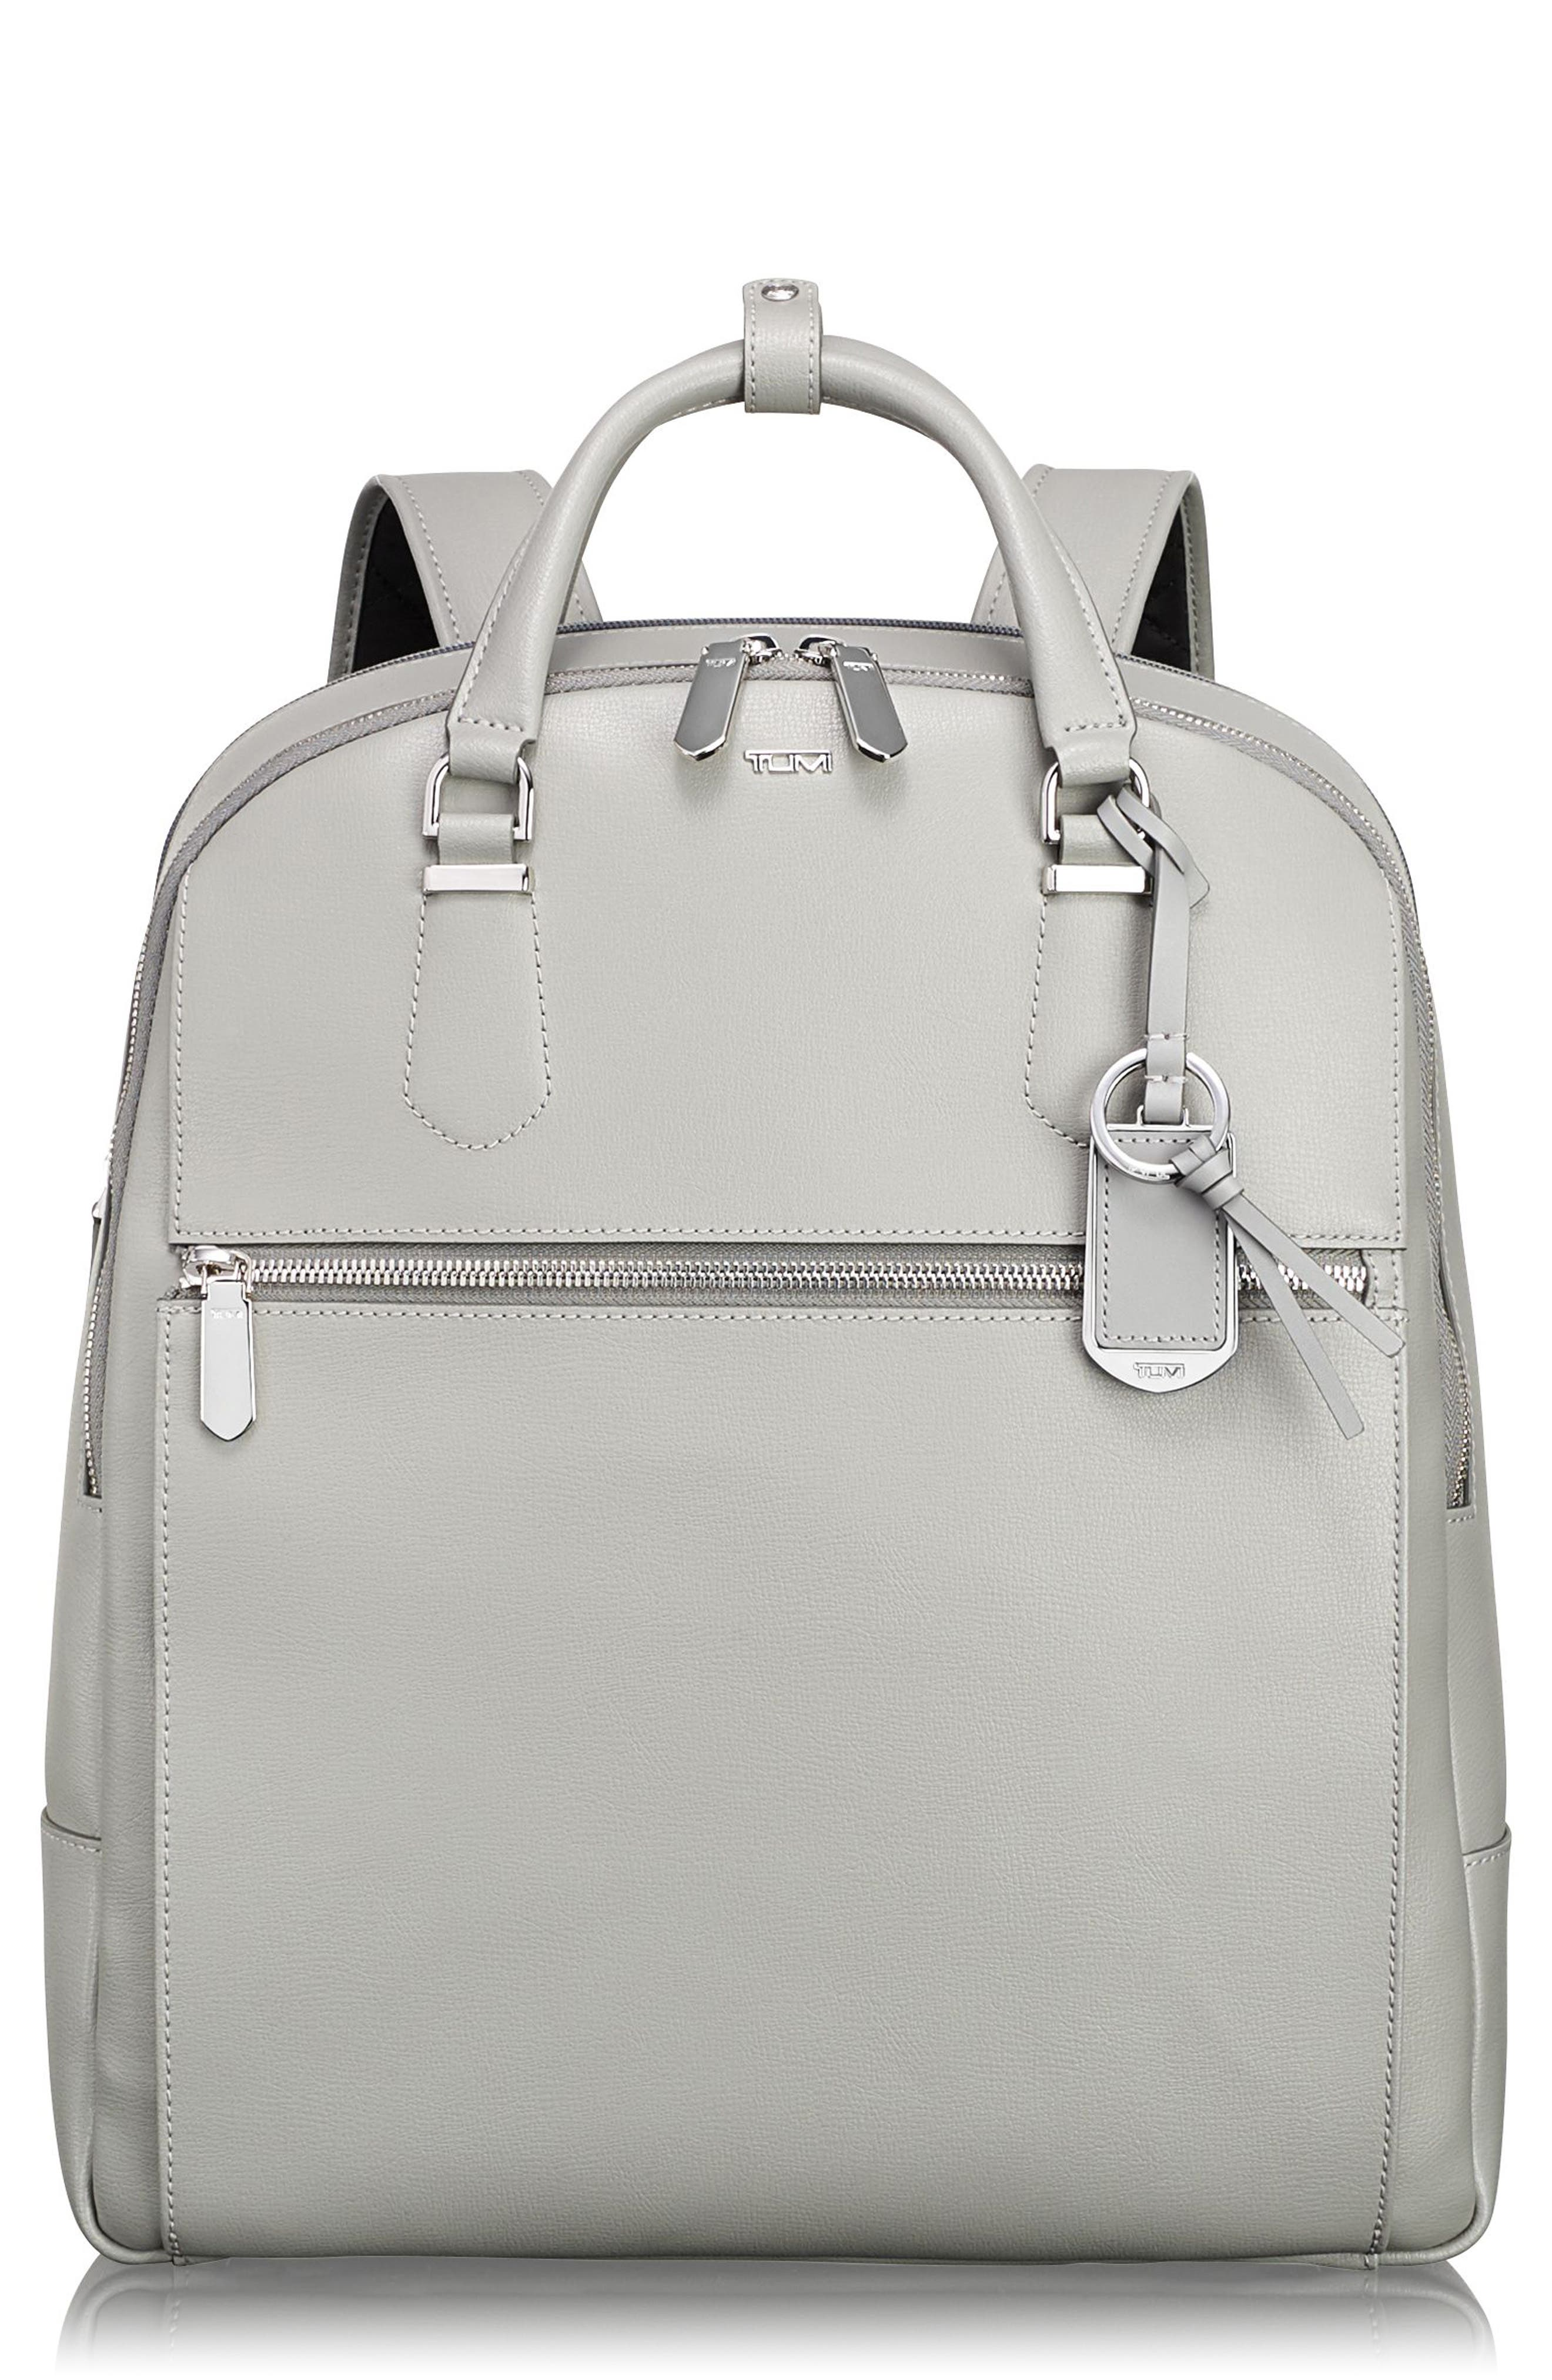 Stanton Orion Leather Backpack,                             Main thumbnail 1, color,                             Light Grey